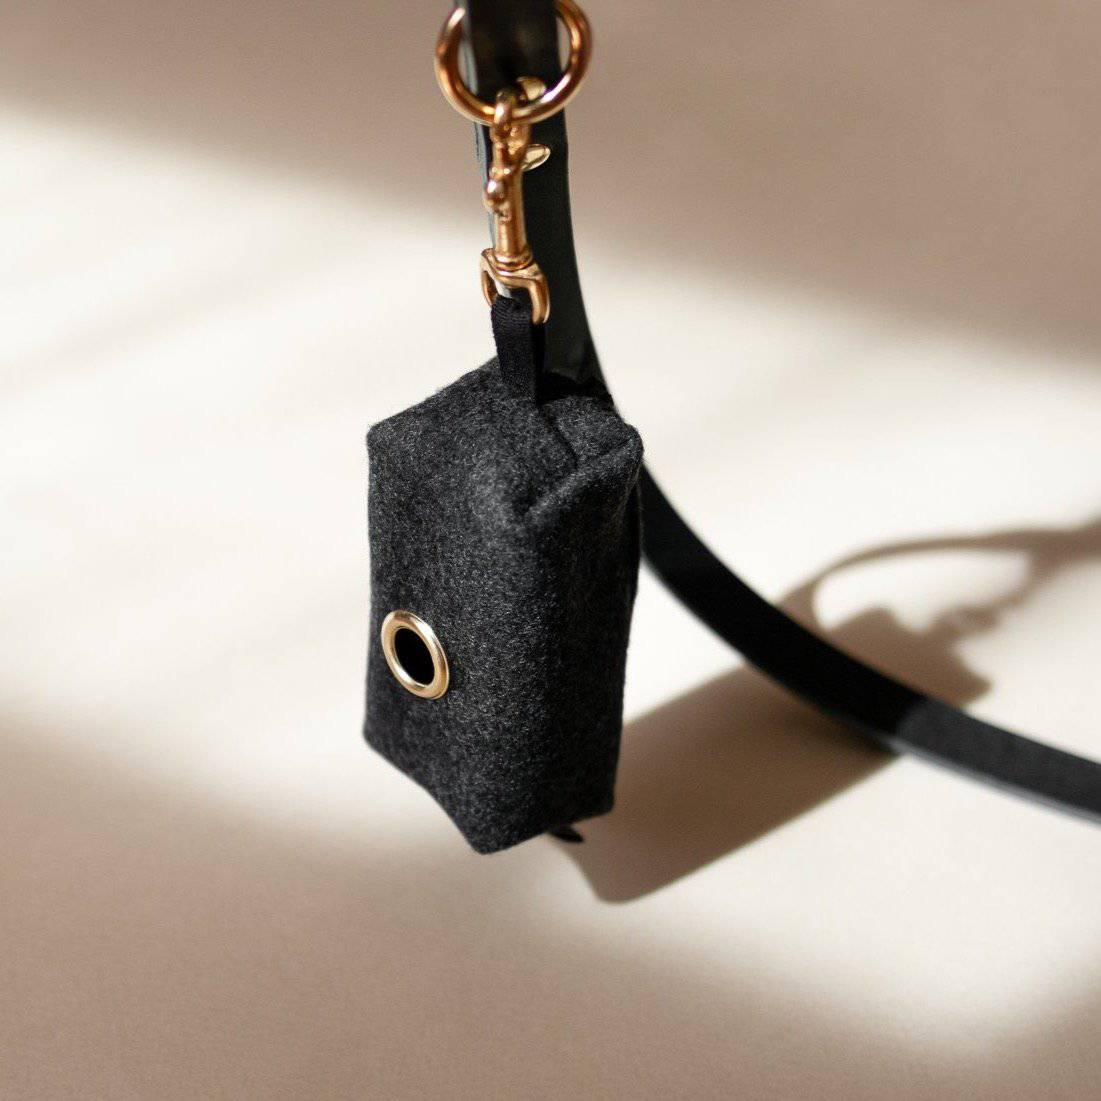 Anthracite  - Melton wool Poo bag holder - Holler Brighton